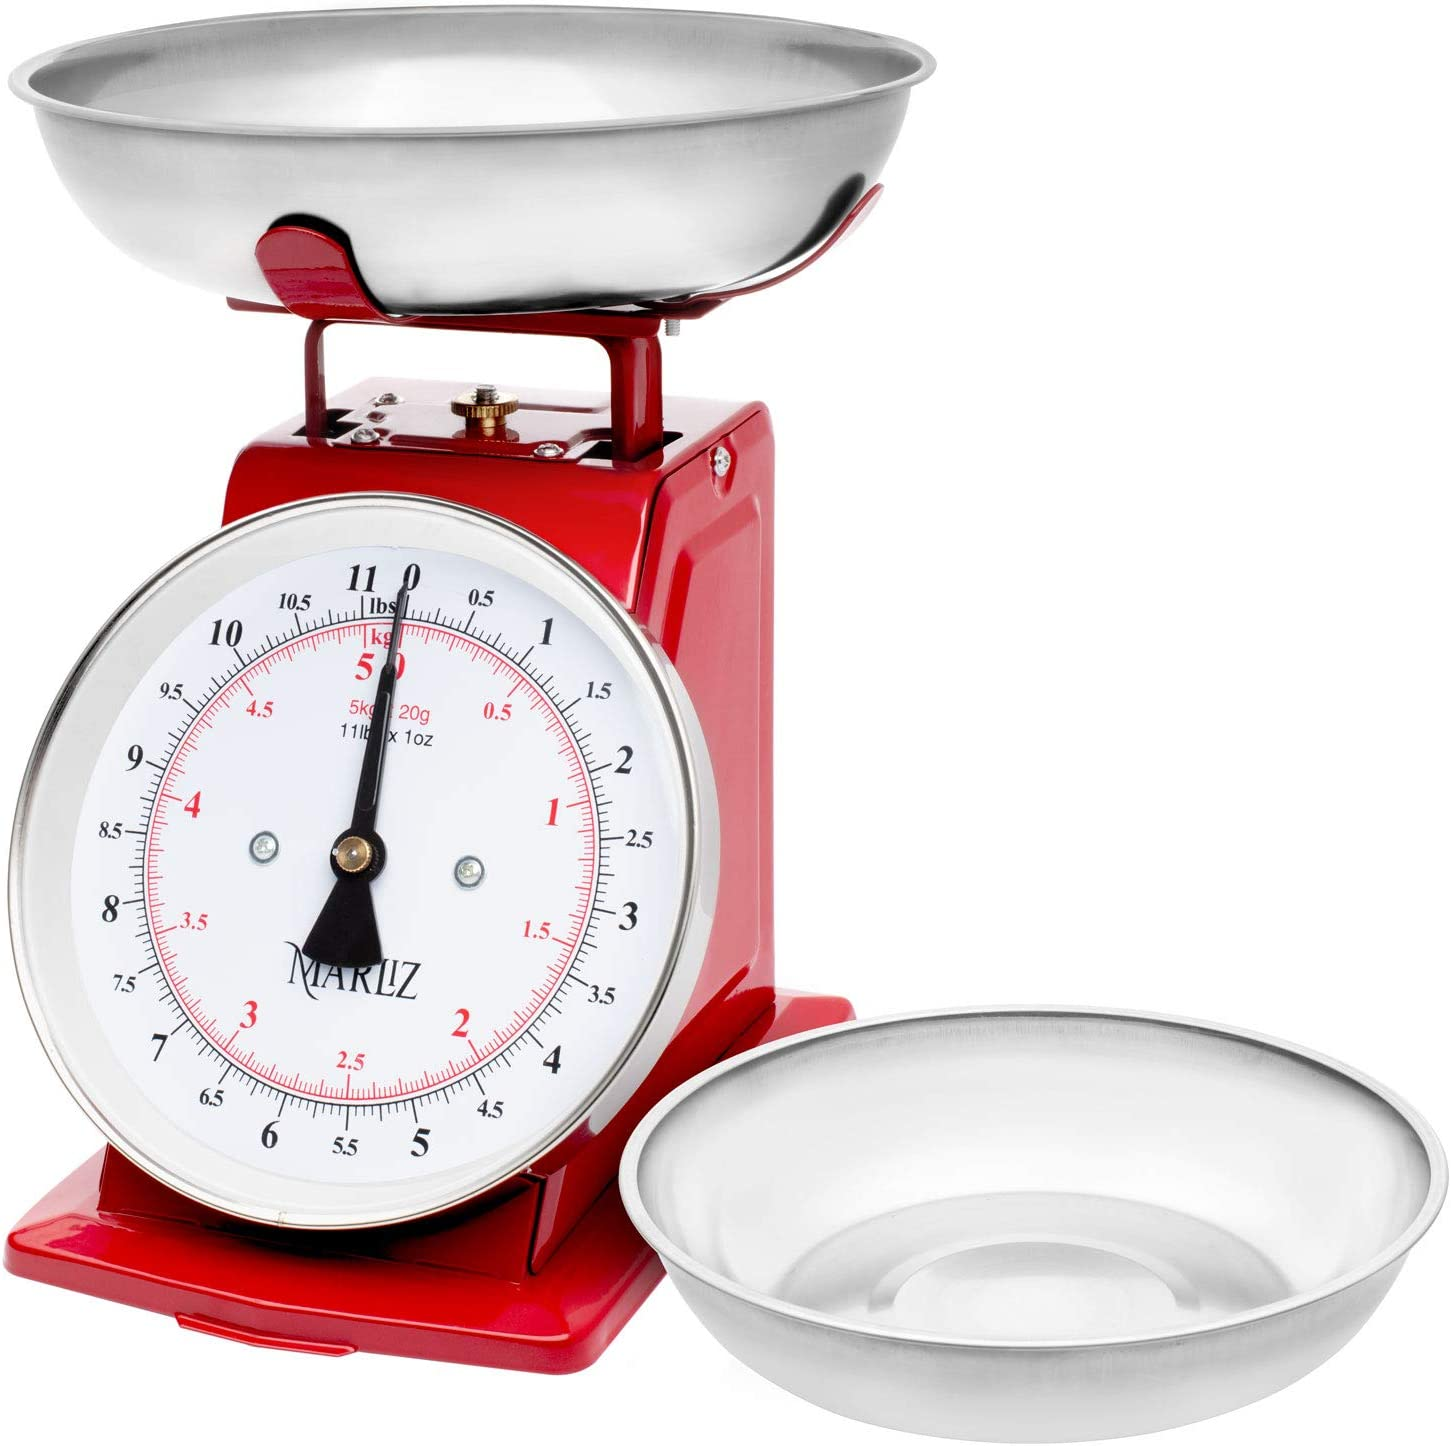 MARLIZ 11 lb/ 5Kg mechanical food scale for kitchen| analog kitchen scale with 2 bowls grams and ounces |balanza di cocina food weight scales red| meat scale small kitchen scale